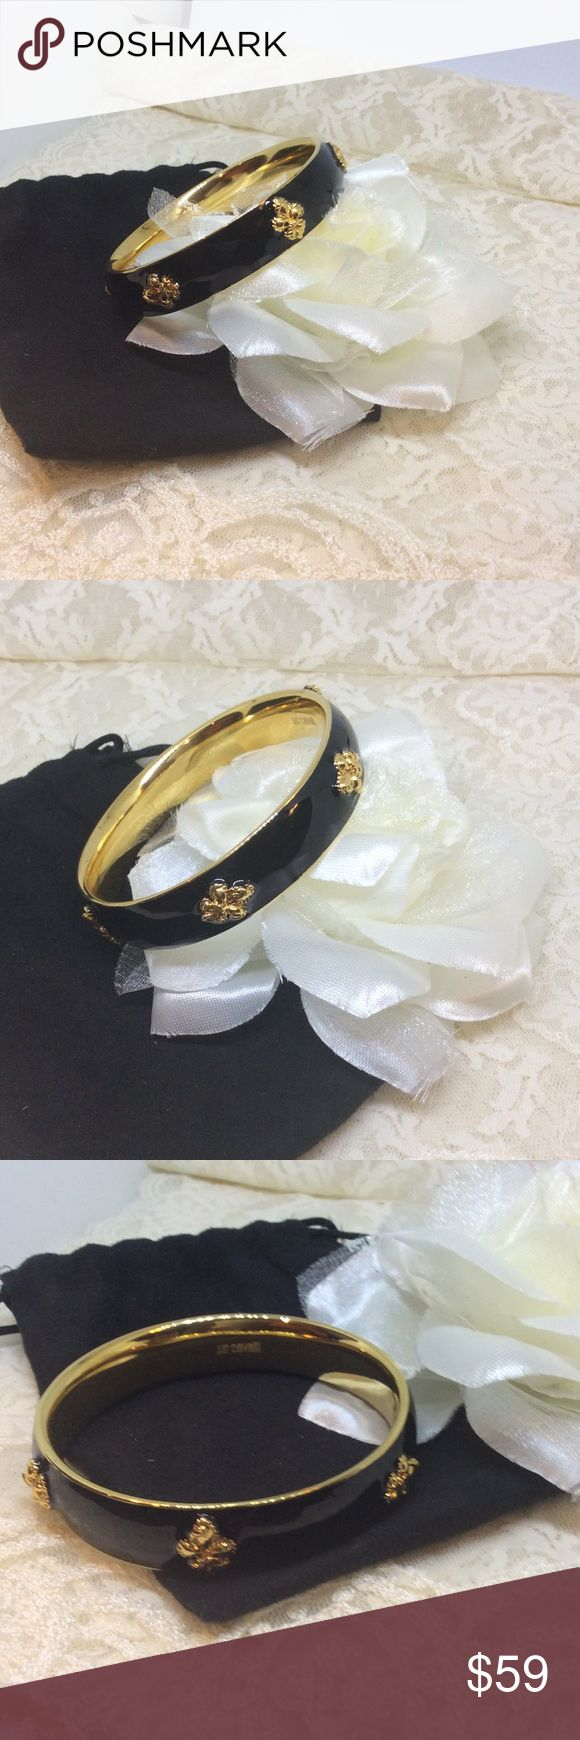 Roberto Cavalli Fleur Black Bracelet Bangle $200 Brand new bracelet!! It's black & gold. Comes with a free sample perfume and the little dust bag. Black with gold fleurs and gold lining on inside. Look at our other items for bundle savings! Just Cavalli Jewelry Bracelets